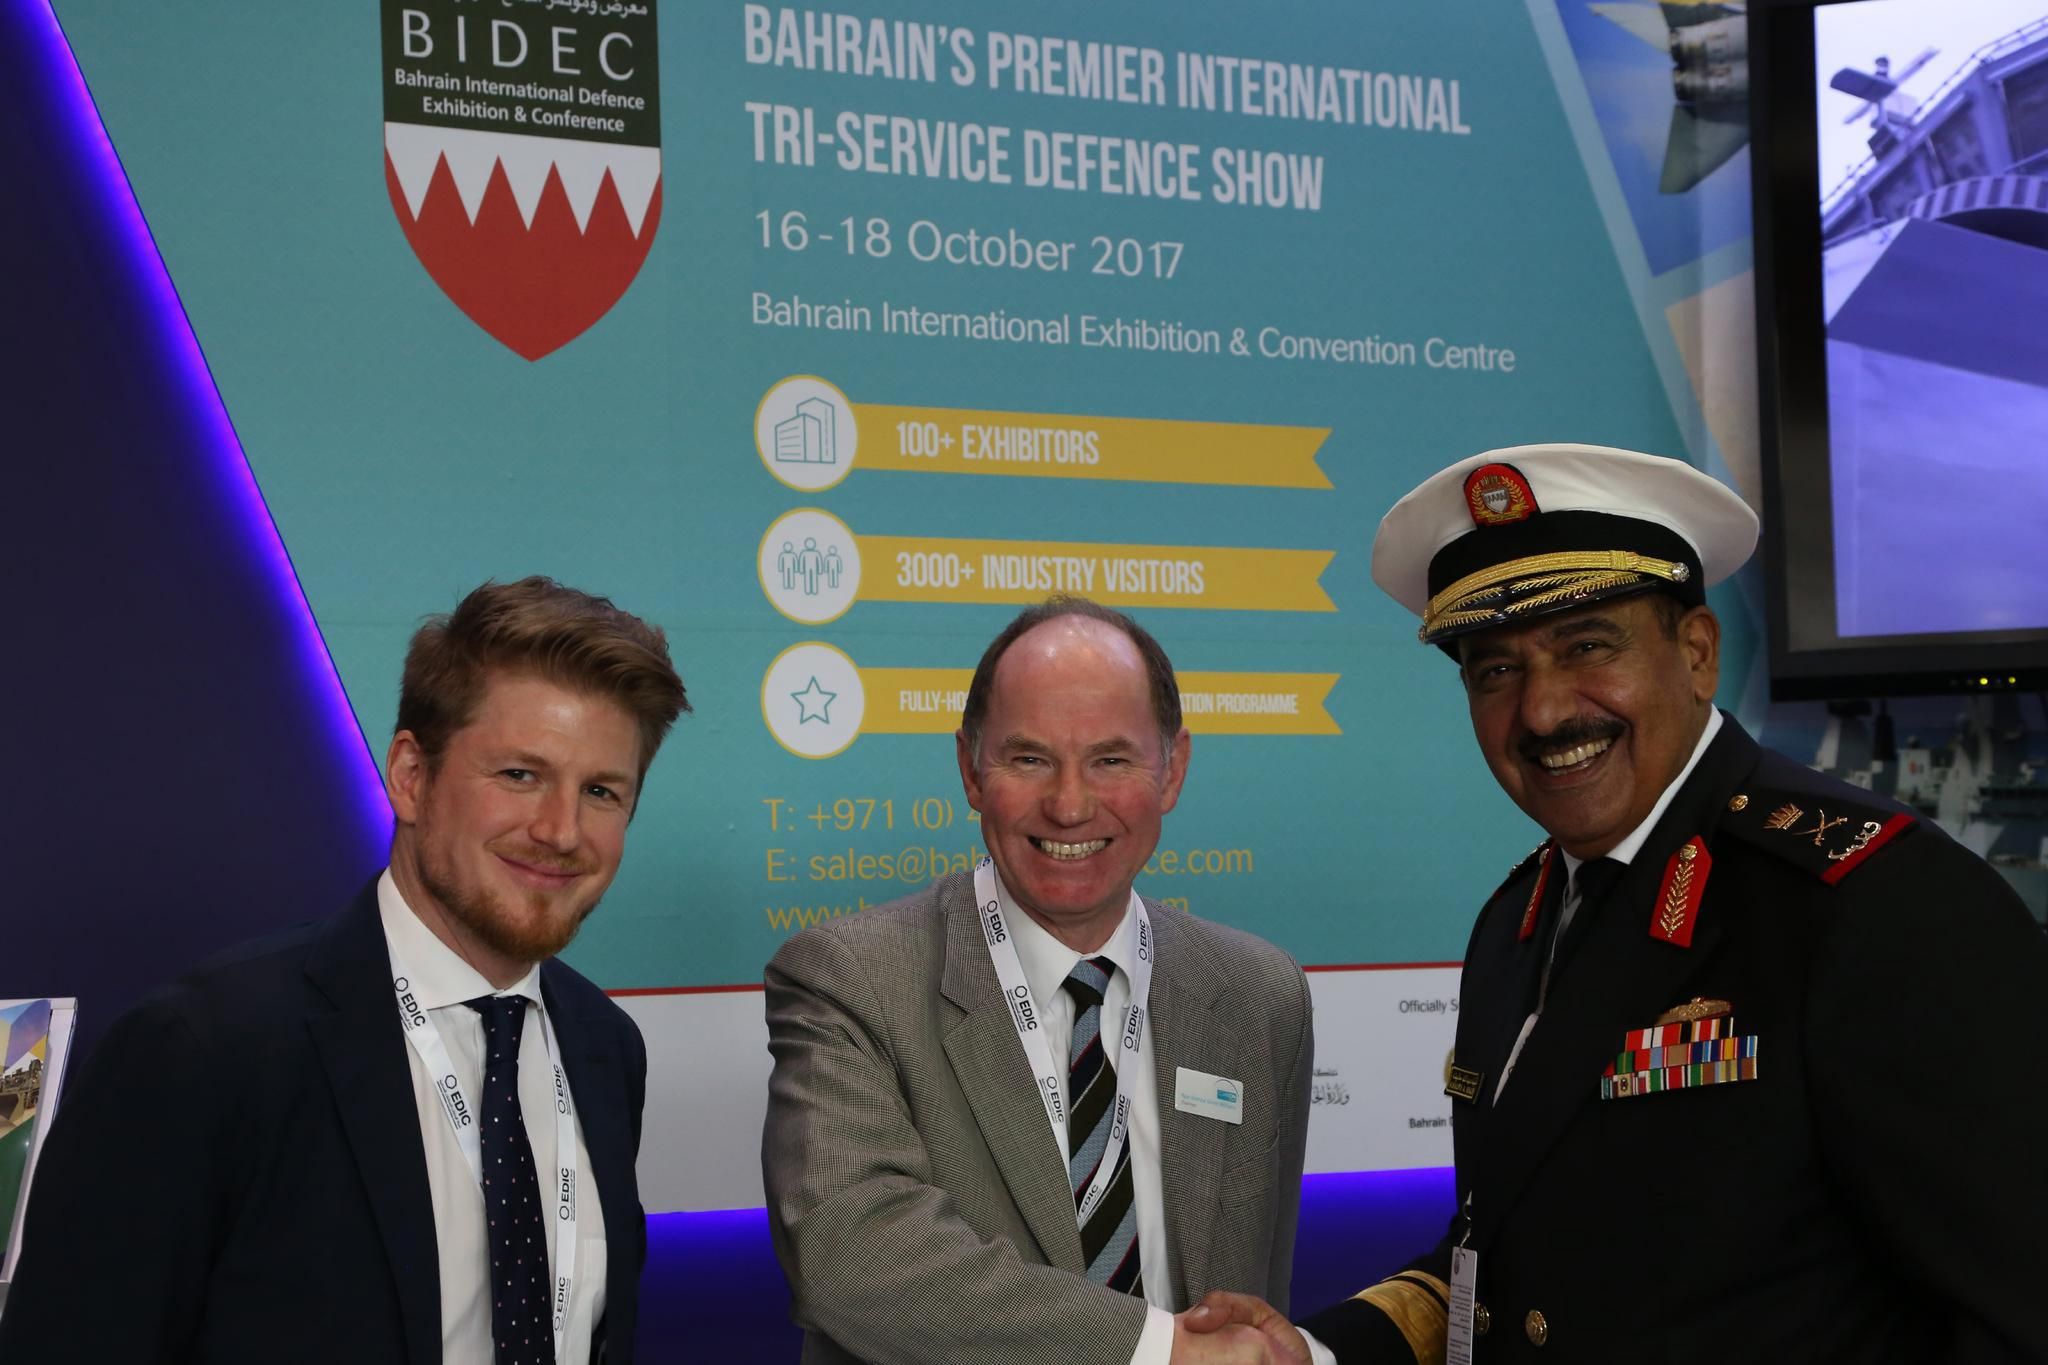 BIDEC Team visit IDEX 2017 in Abu Dhabi with Bahrain Defence Force representatives